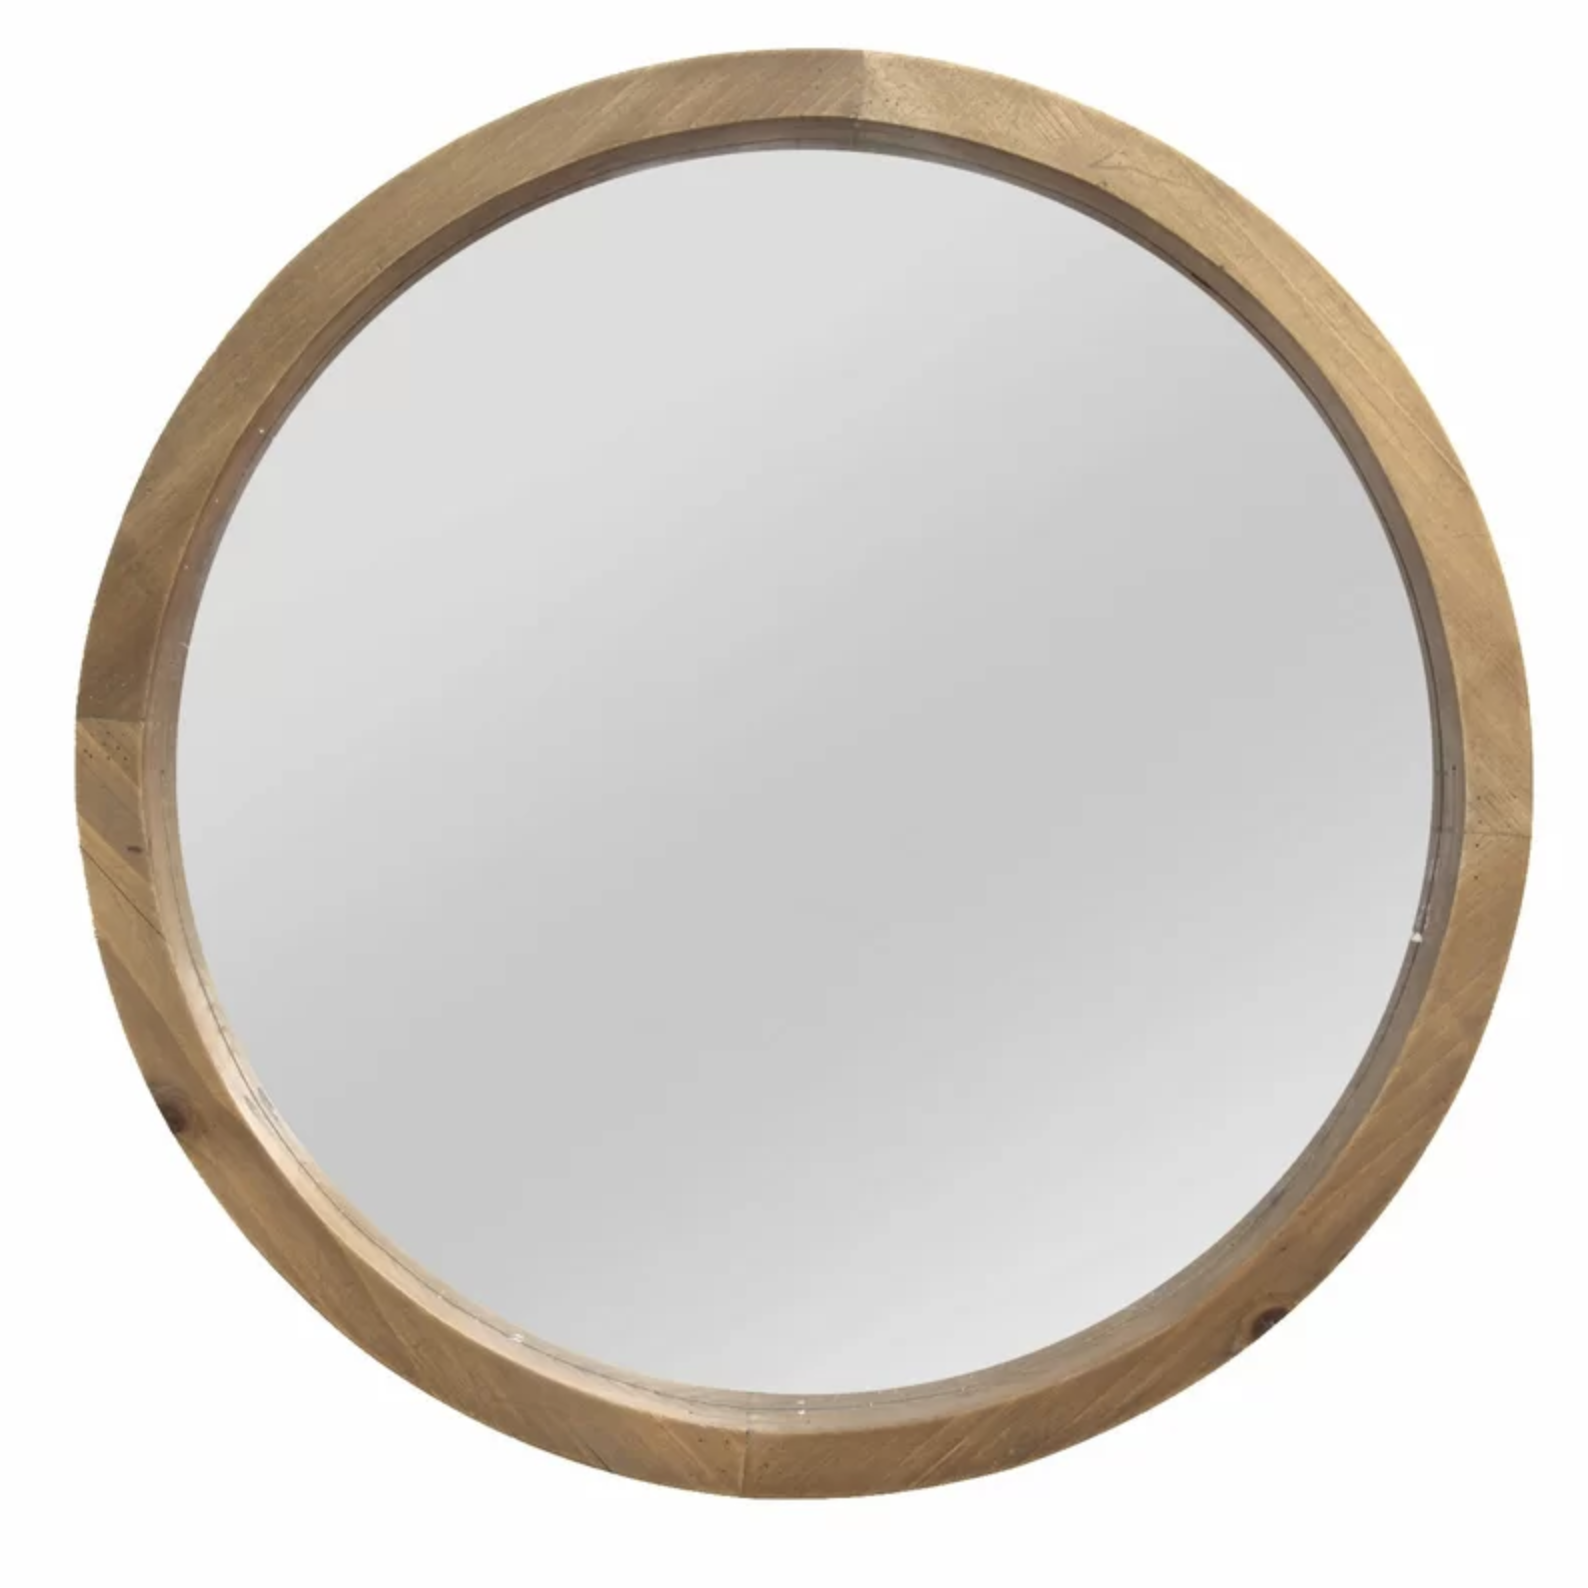 Wood Round Accent Mirror | Shop Miranda Schroeder Blog